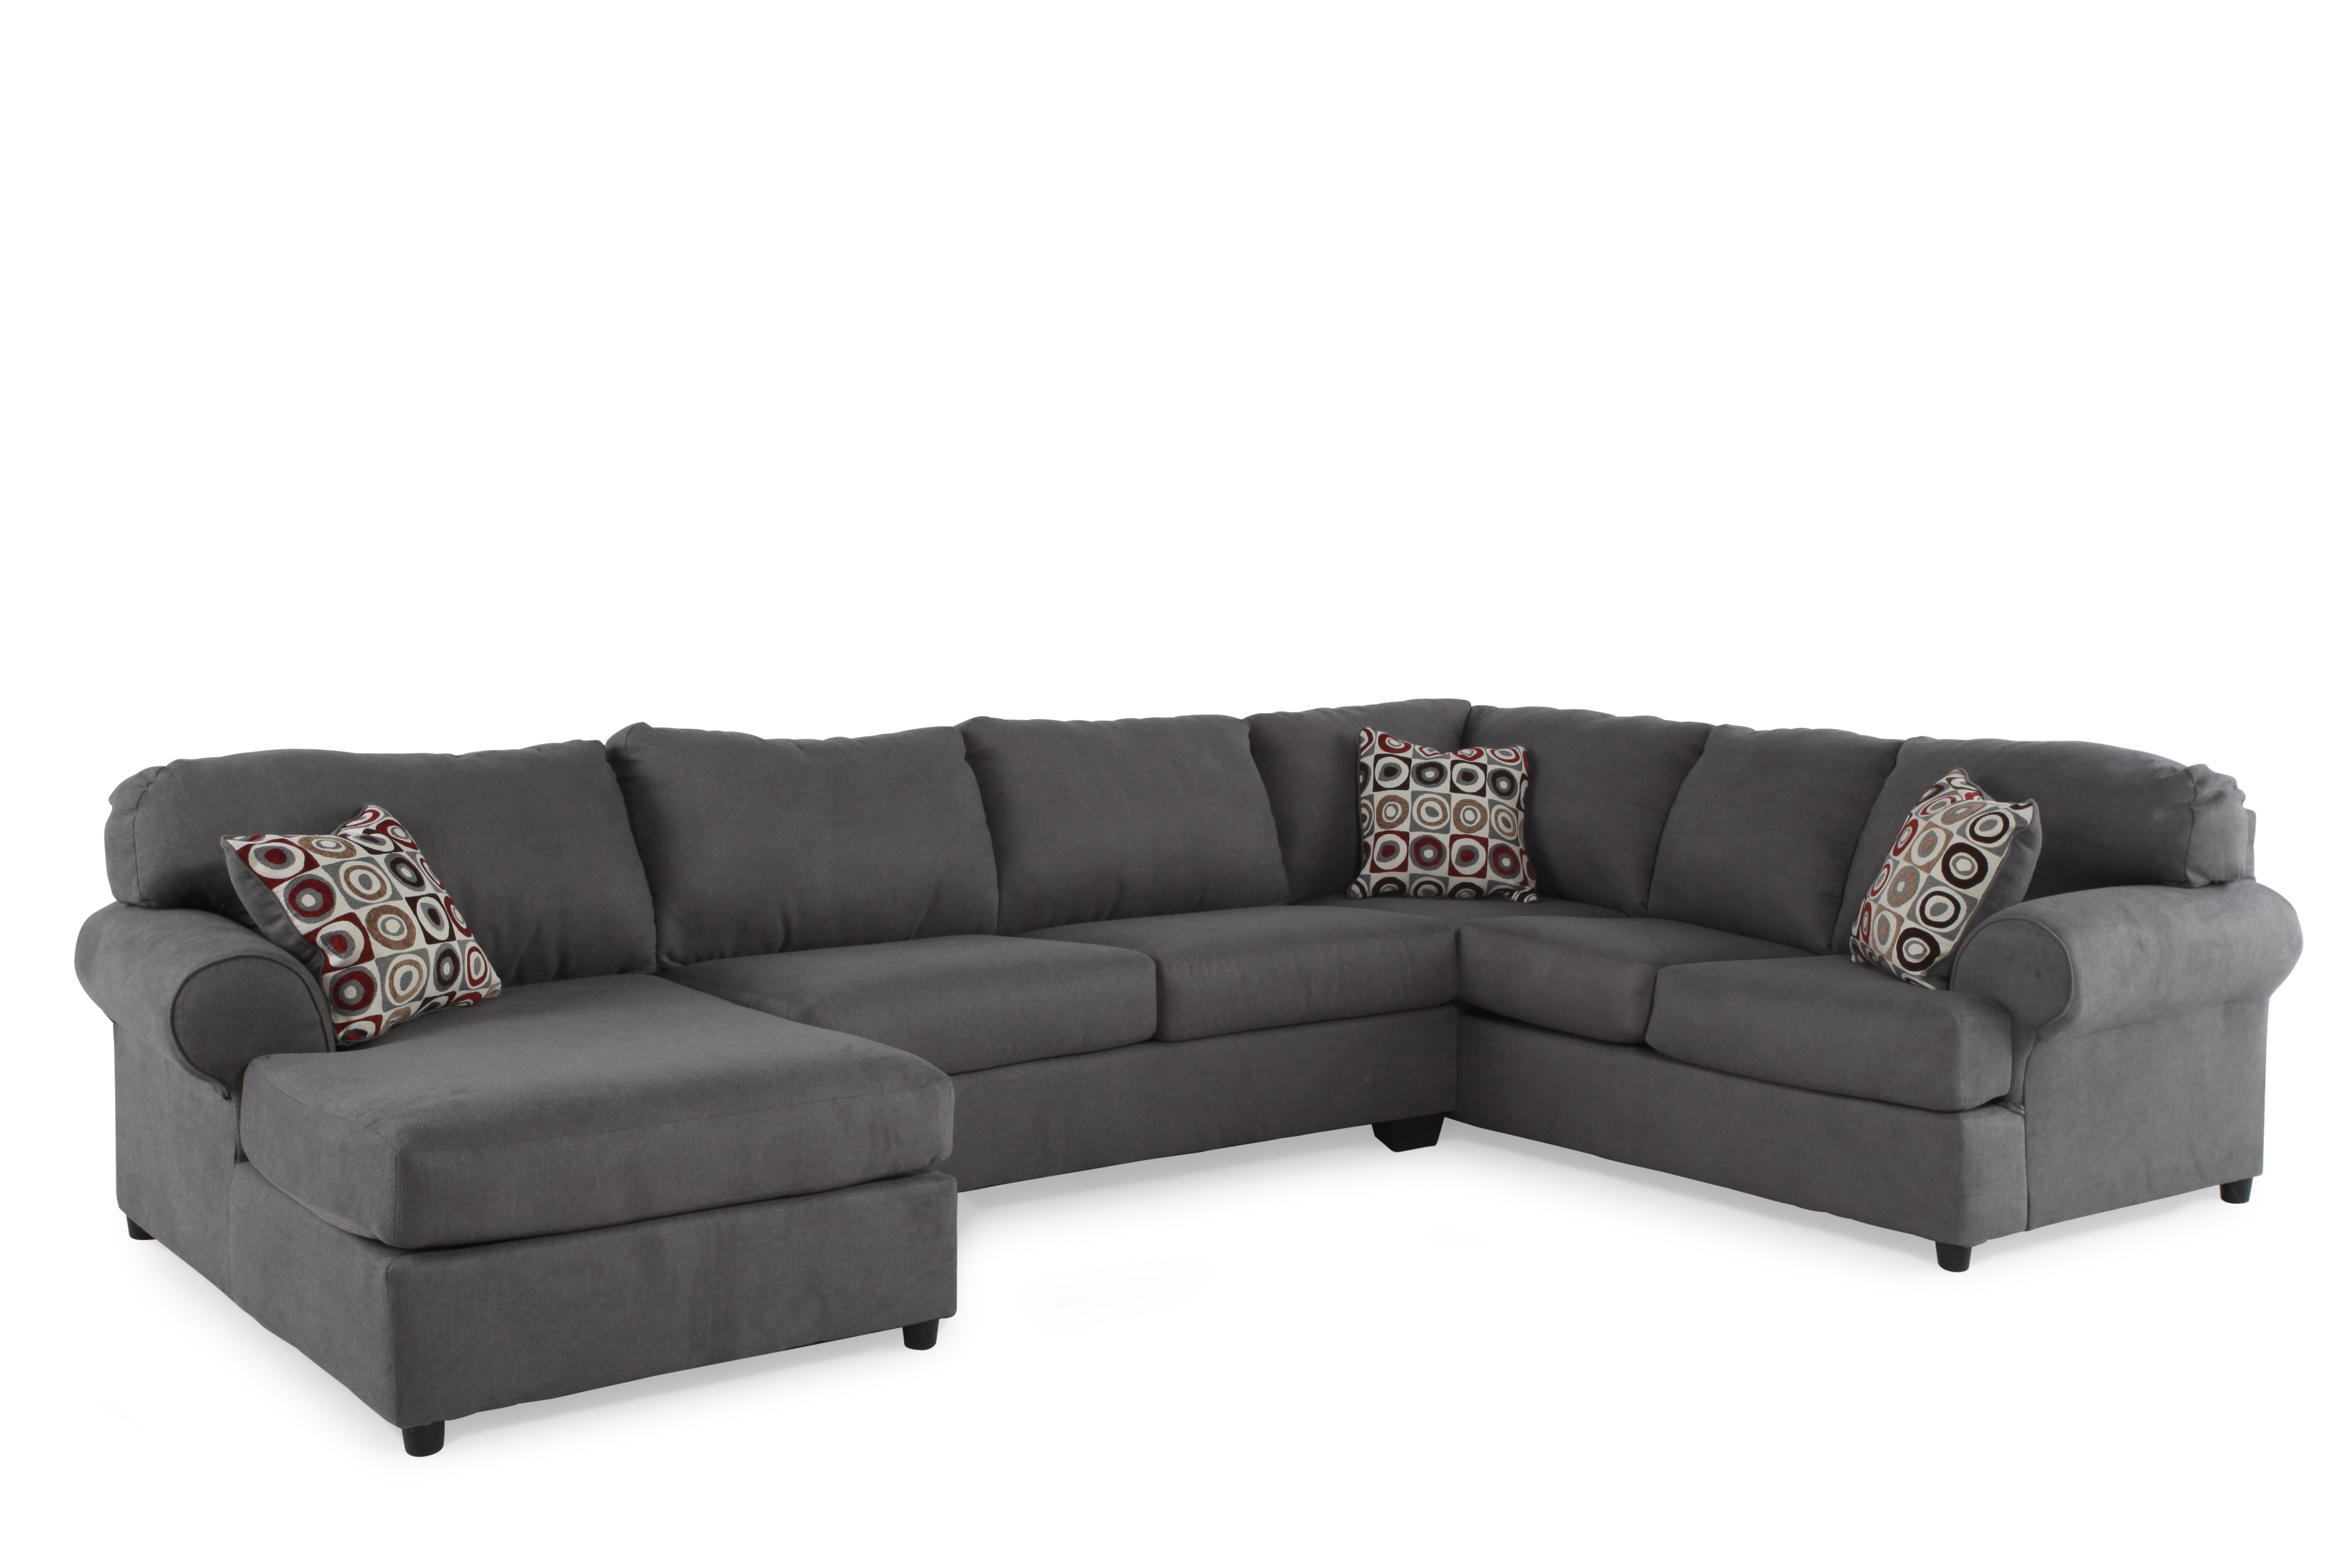 Trendy Mathis Brothers Chaise Lounge Chairs Regarding Ashley Jayceon Three Piece Sectional (View 13 of 15)